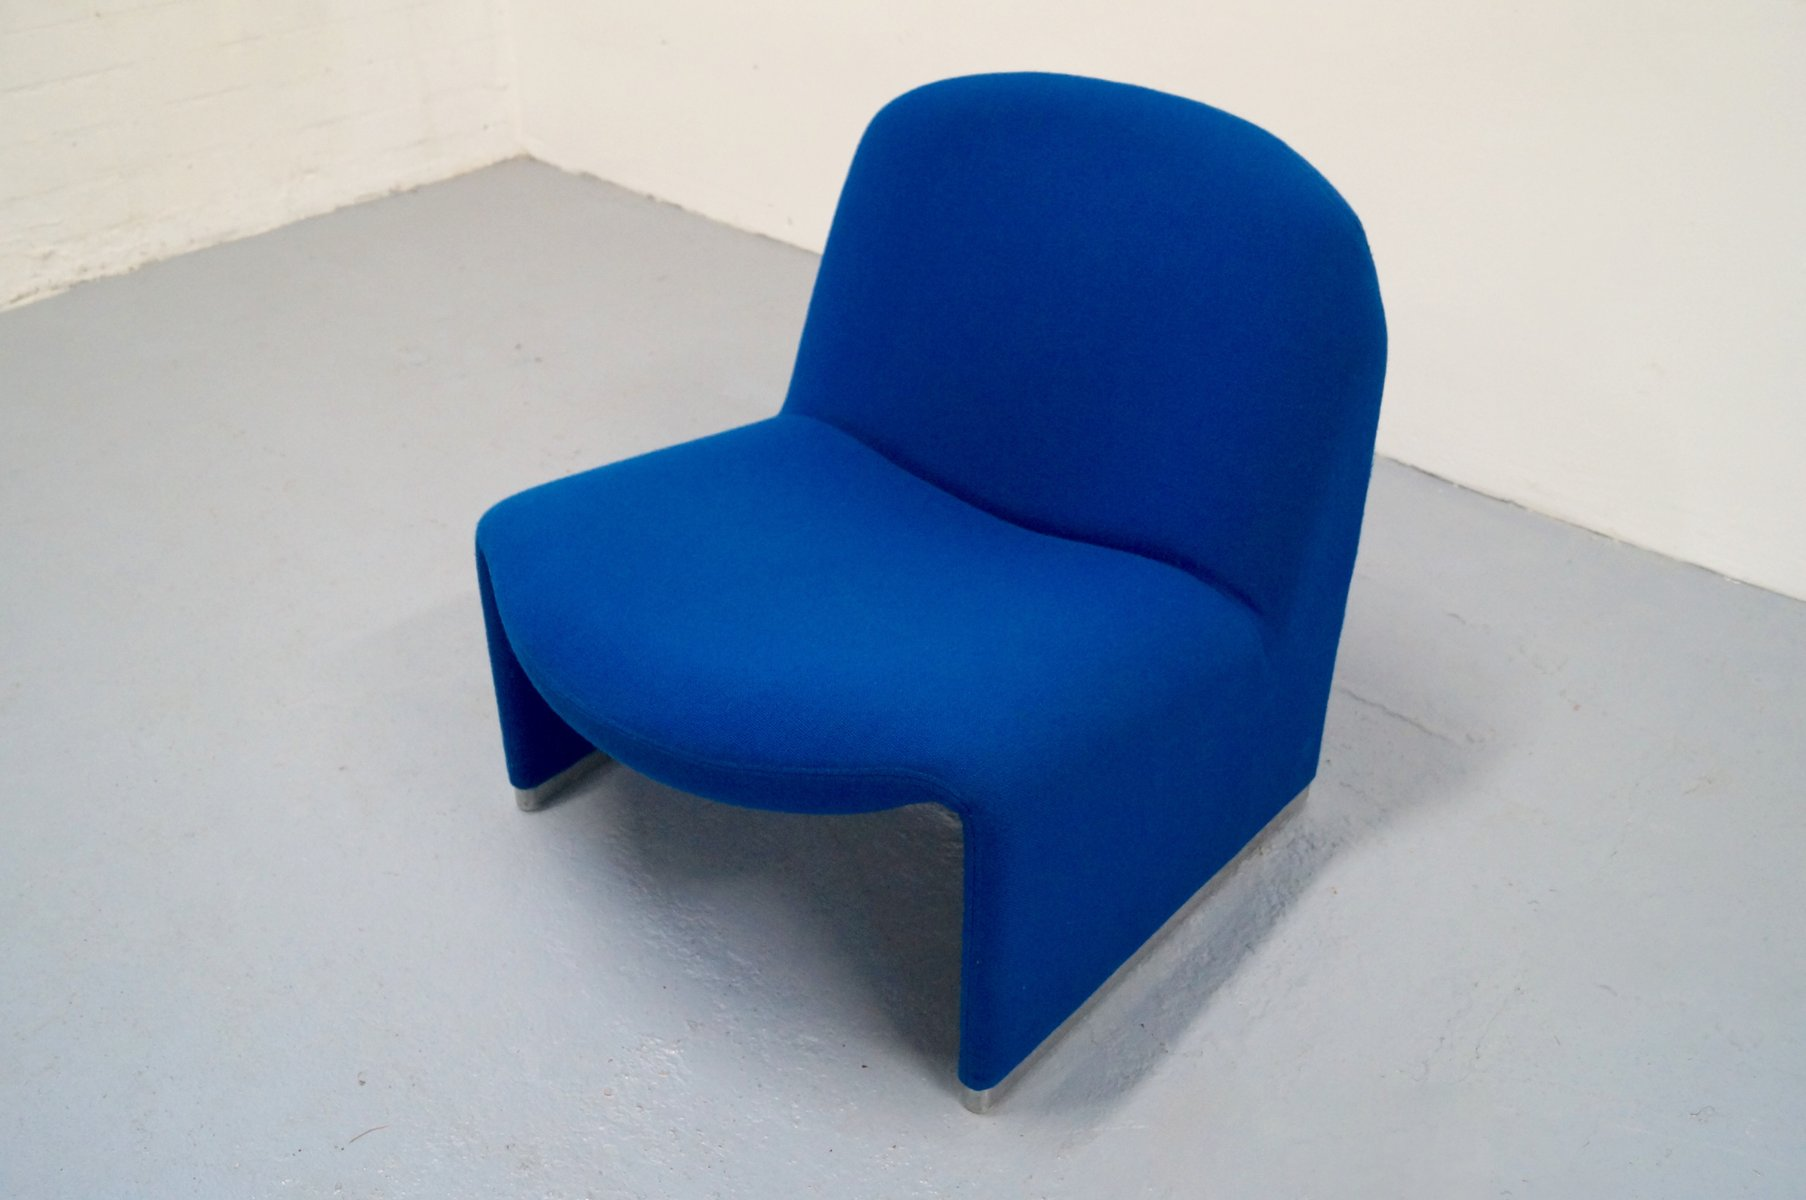 Blue Alky Lounge Chair by Giancarlo Piretti for Artifort for sale at Pamono